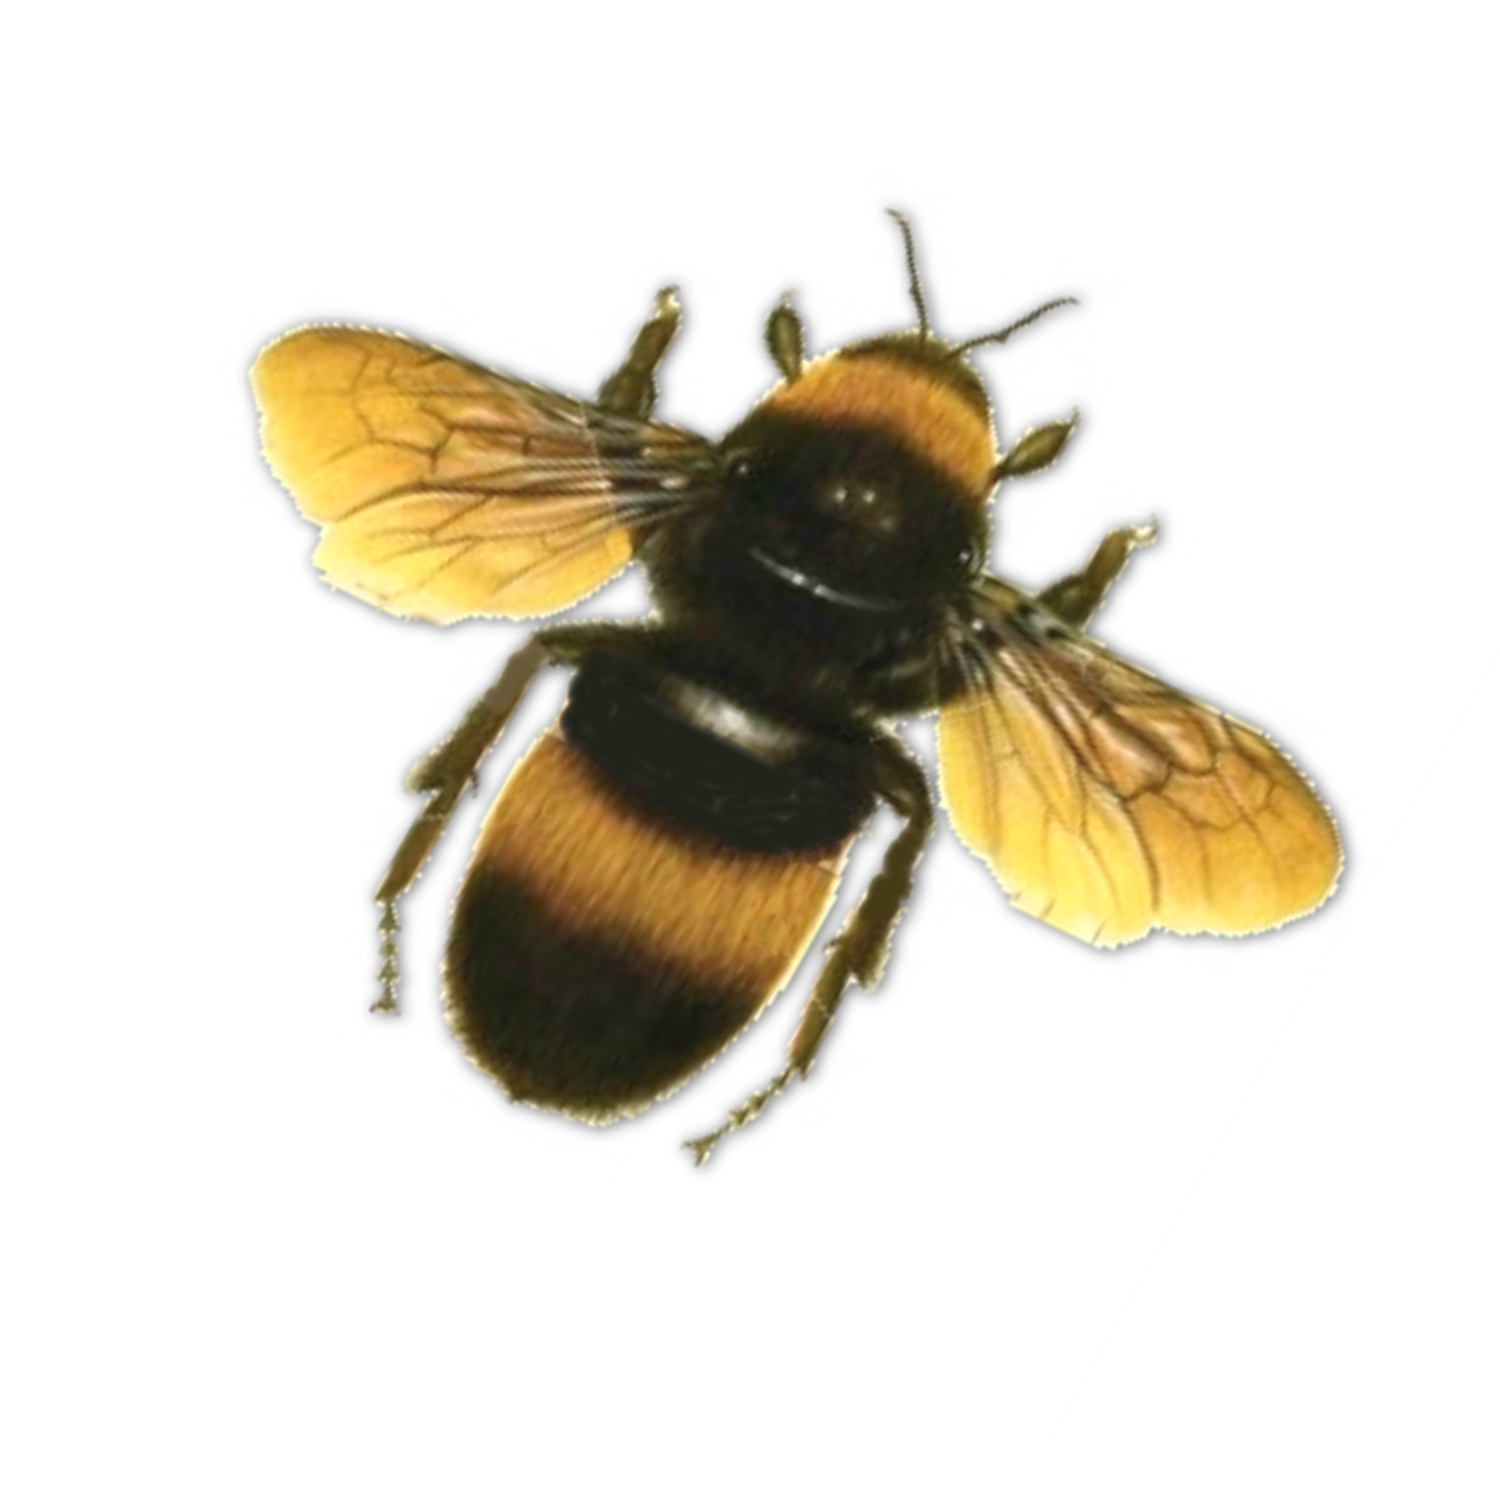 Bees transparent. Bee png images all